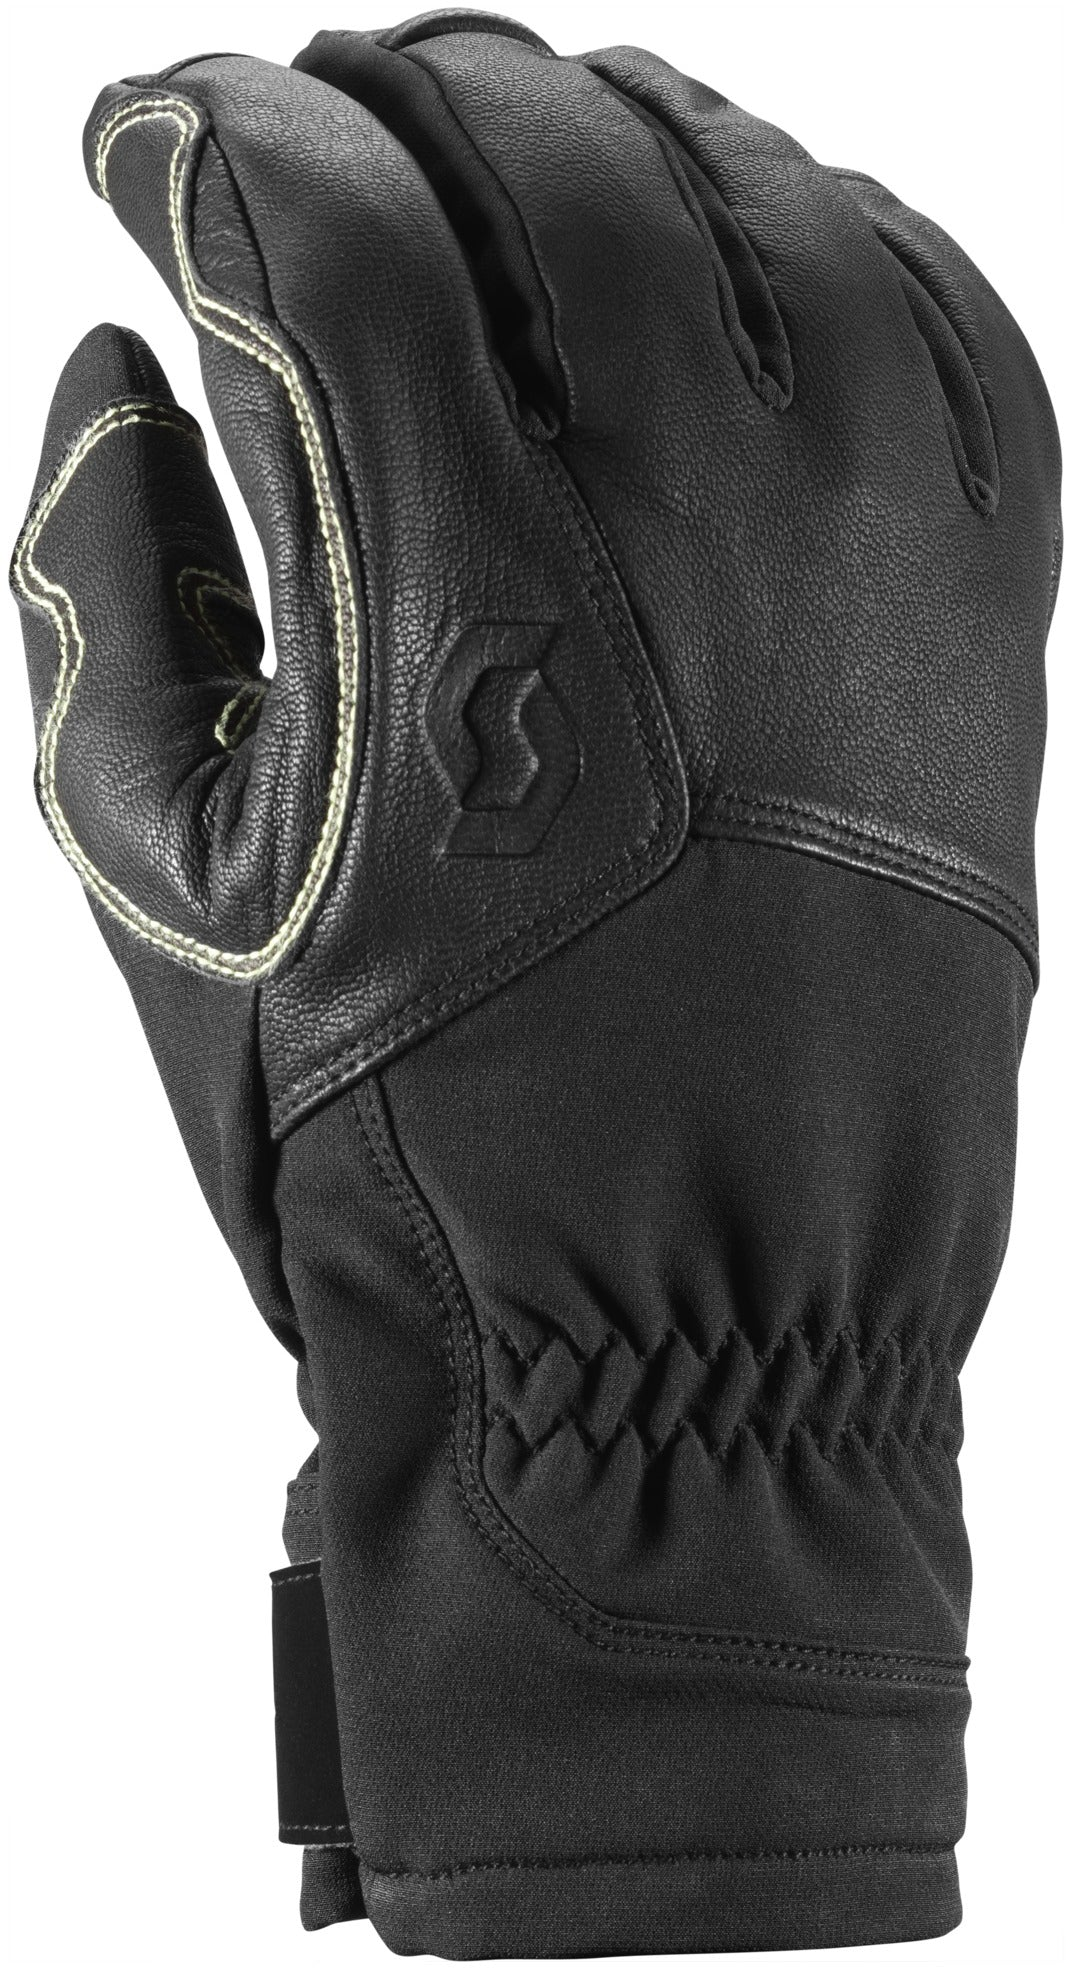 Scott - Explorair Tech - Black - Apparelly Gloves